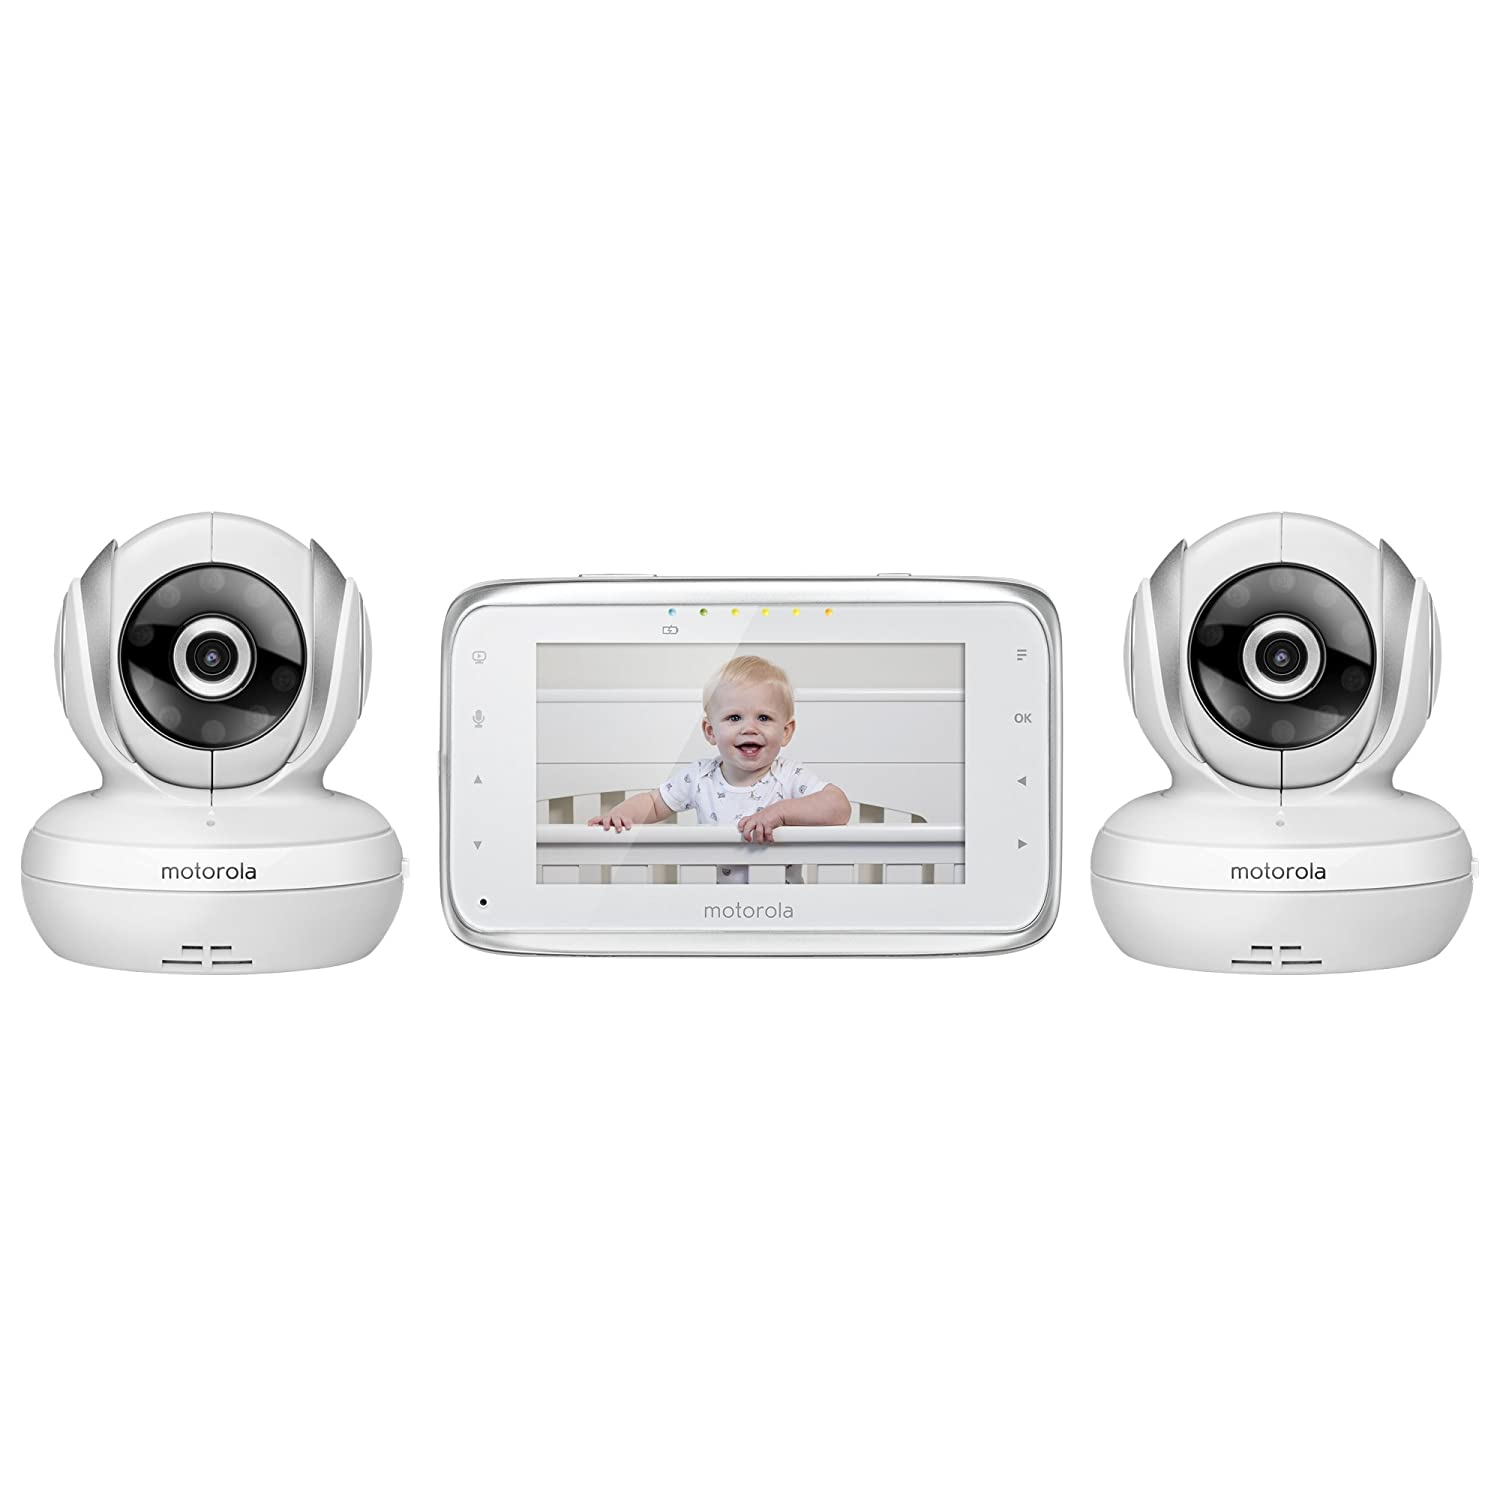 Motorola MBP38S-2 Digital Video Baby Monitor